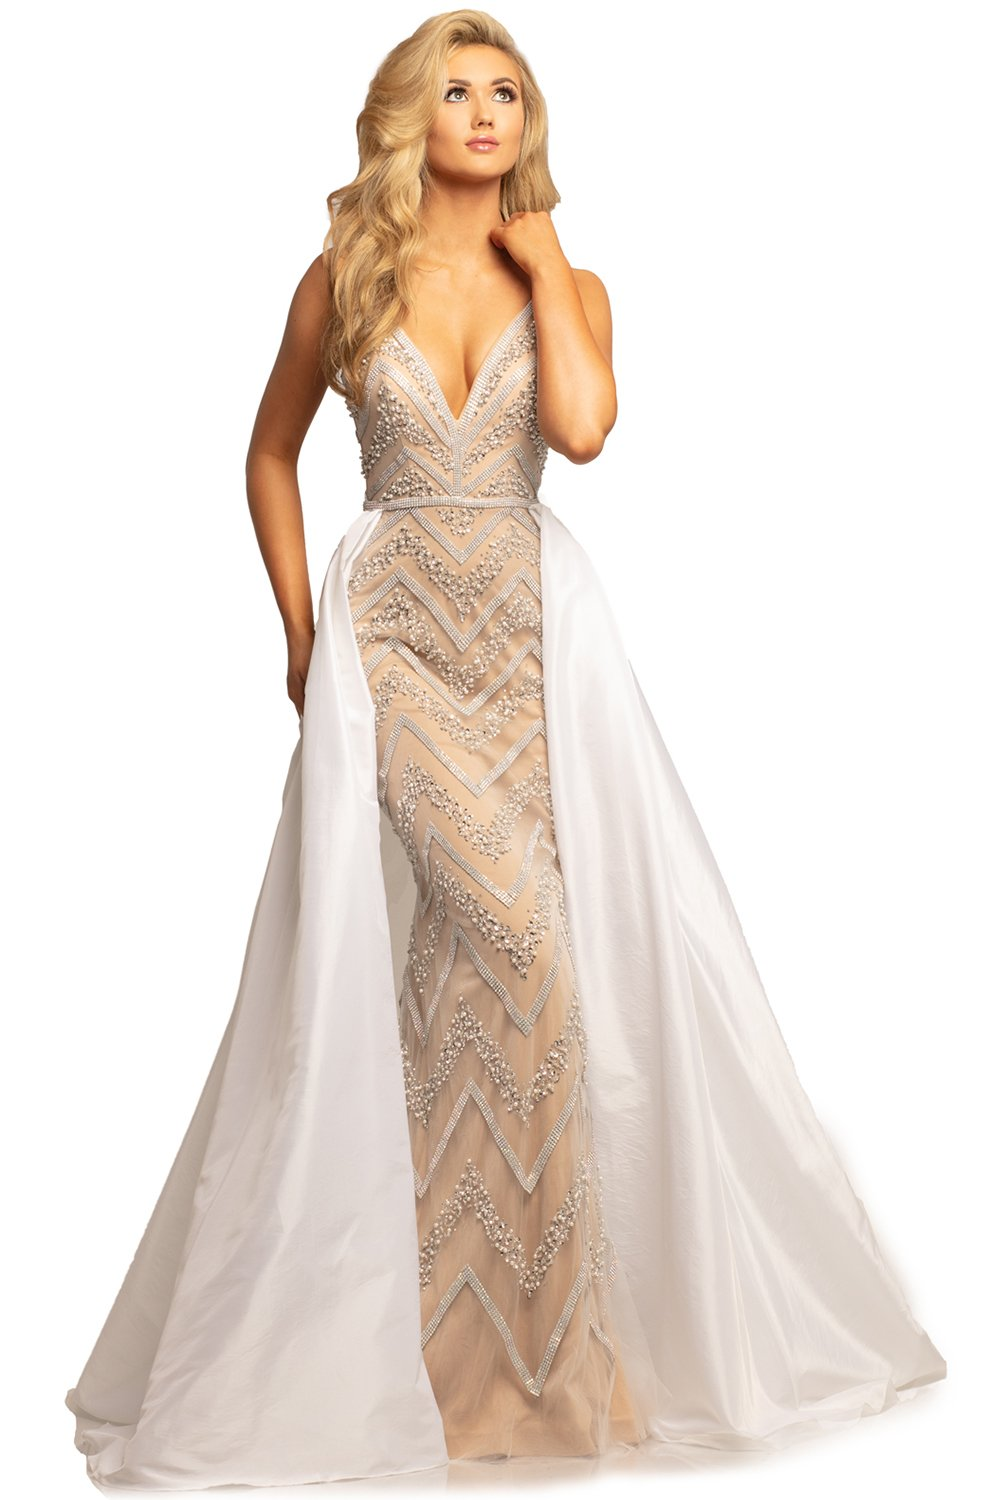 Johnathan Kayne - 2052 Embellished Dress with Ballgown Overskirt In White and Neutral